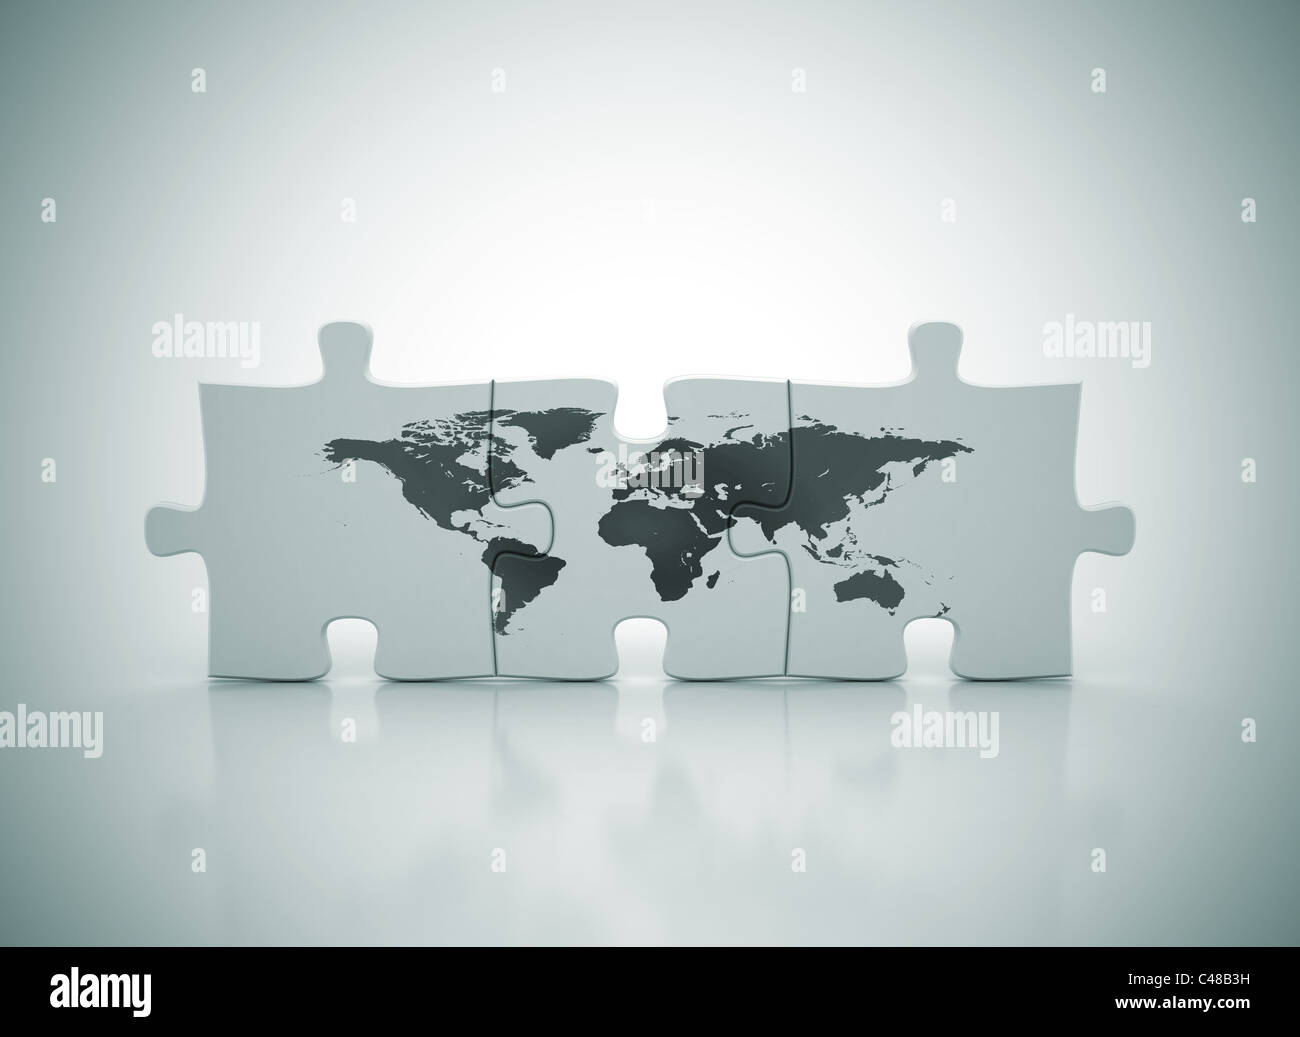 Jigsaw puzzle world map stock photos jigsaw puzzle world map stock world map on puzzle stock image gumiabroncs Image collections